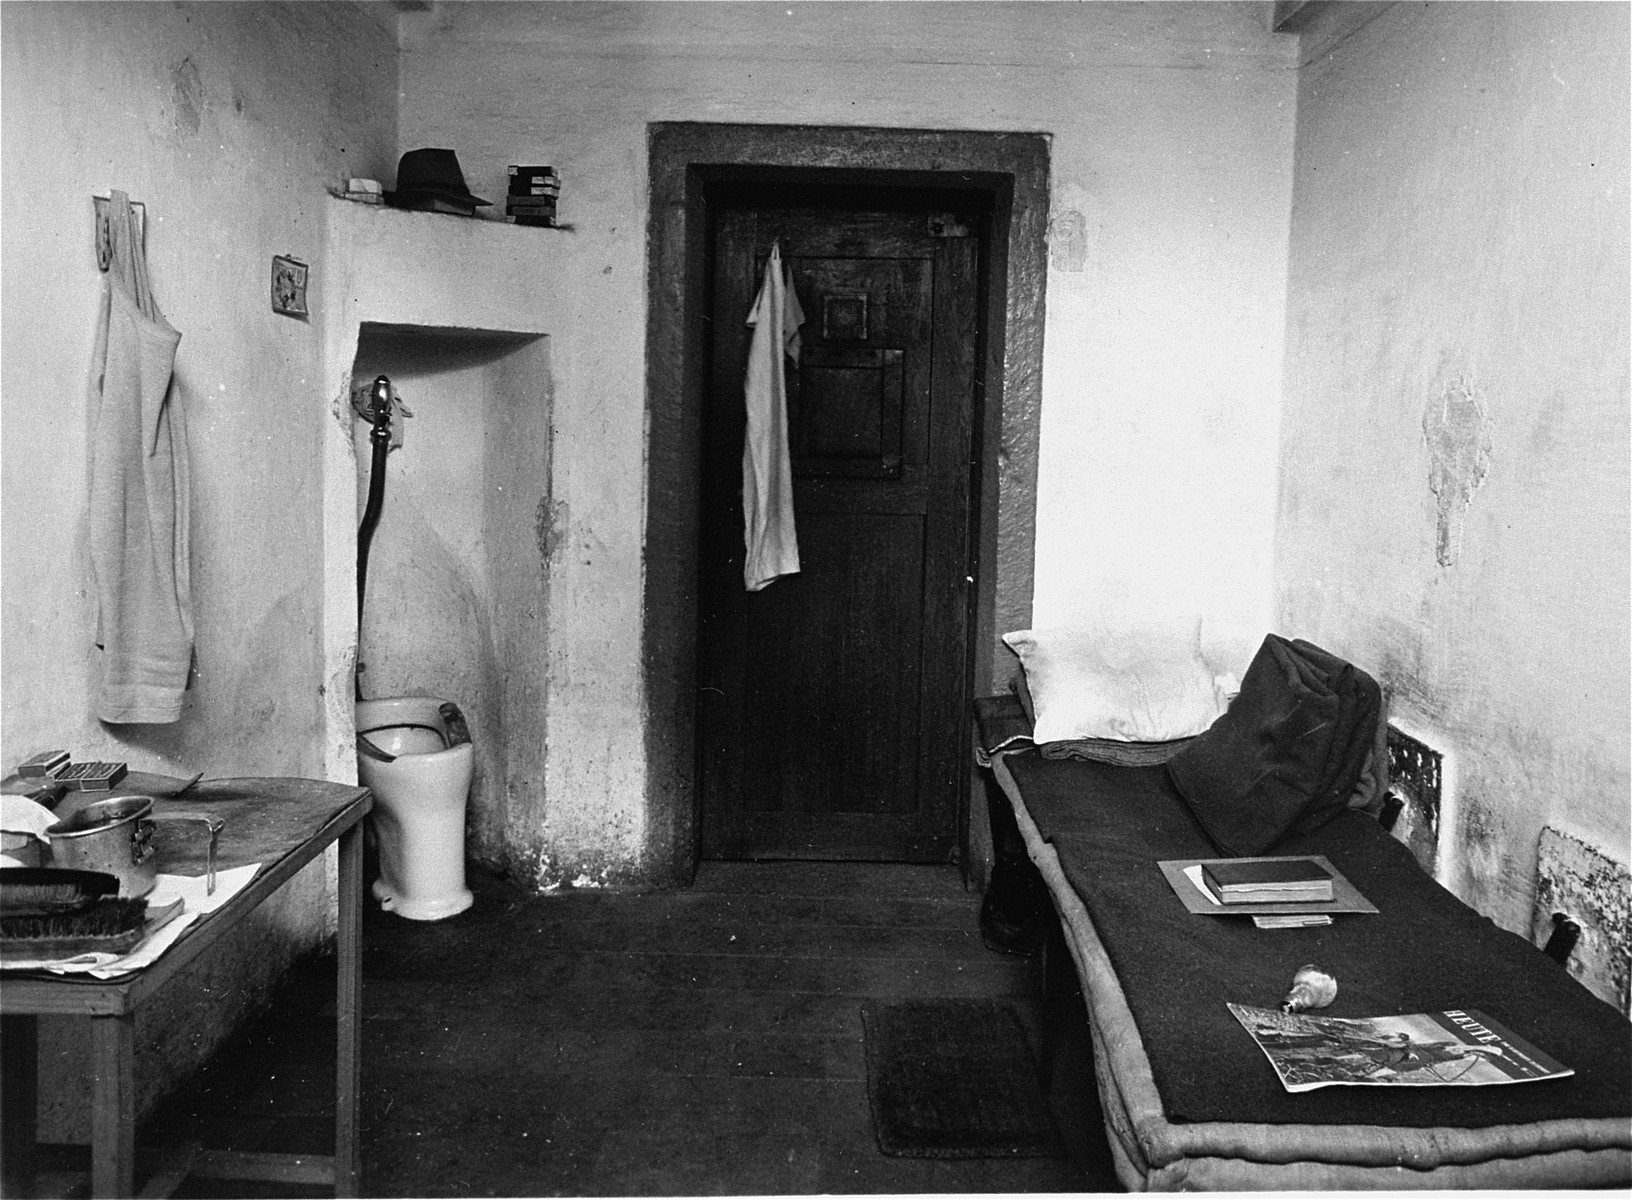 View of a jail cell in the Nuremberg prison, where the defendants of the International Military Tribunal trial of war criminals were confined.